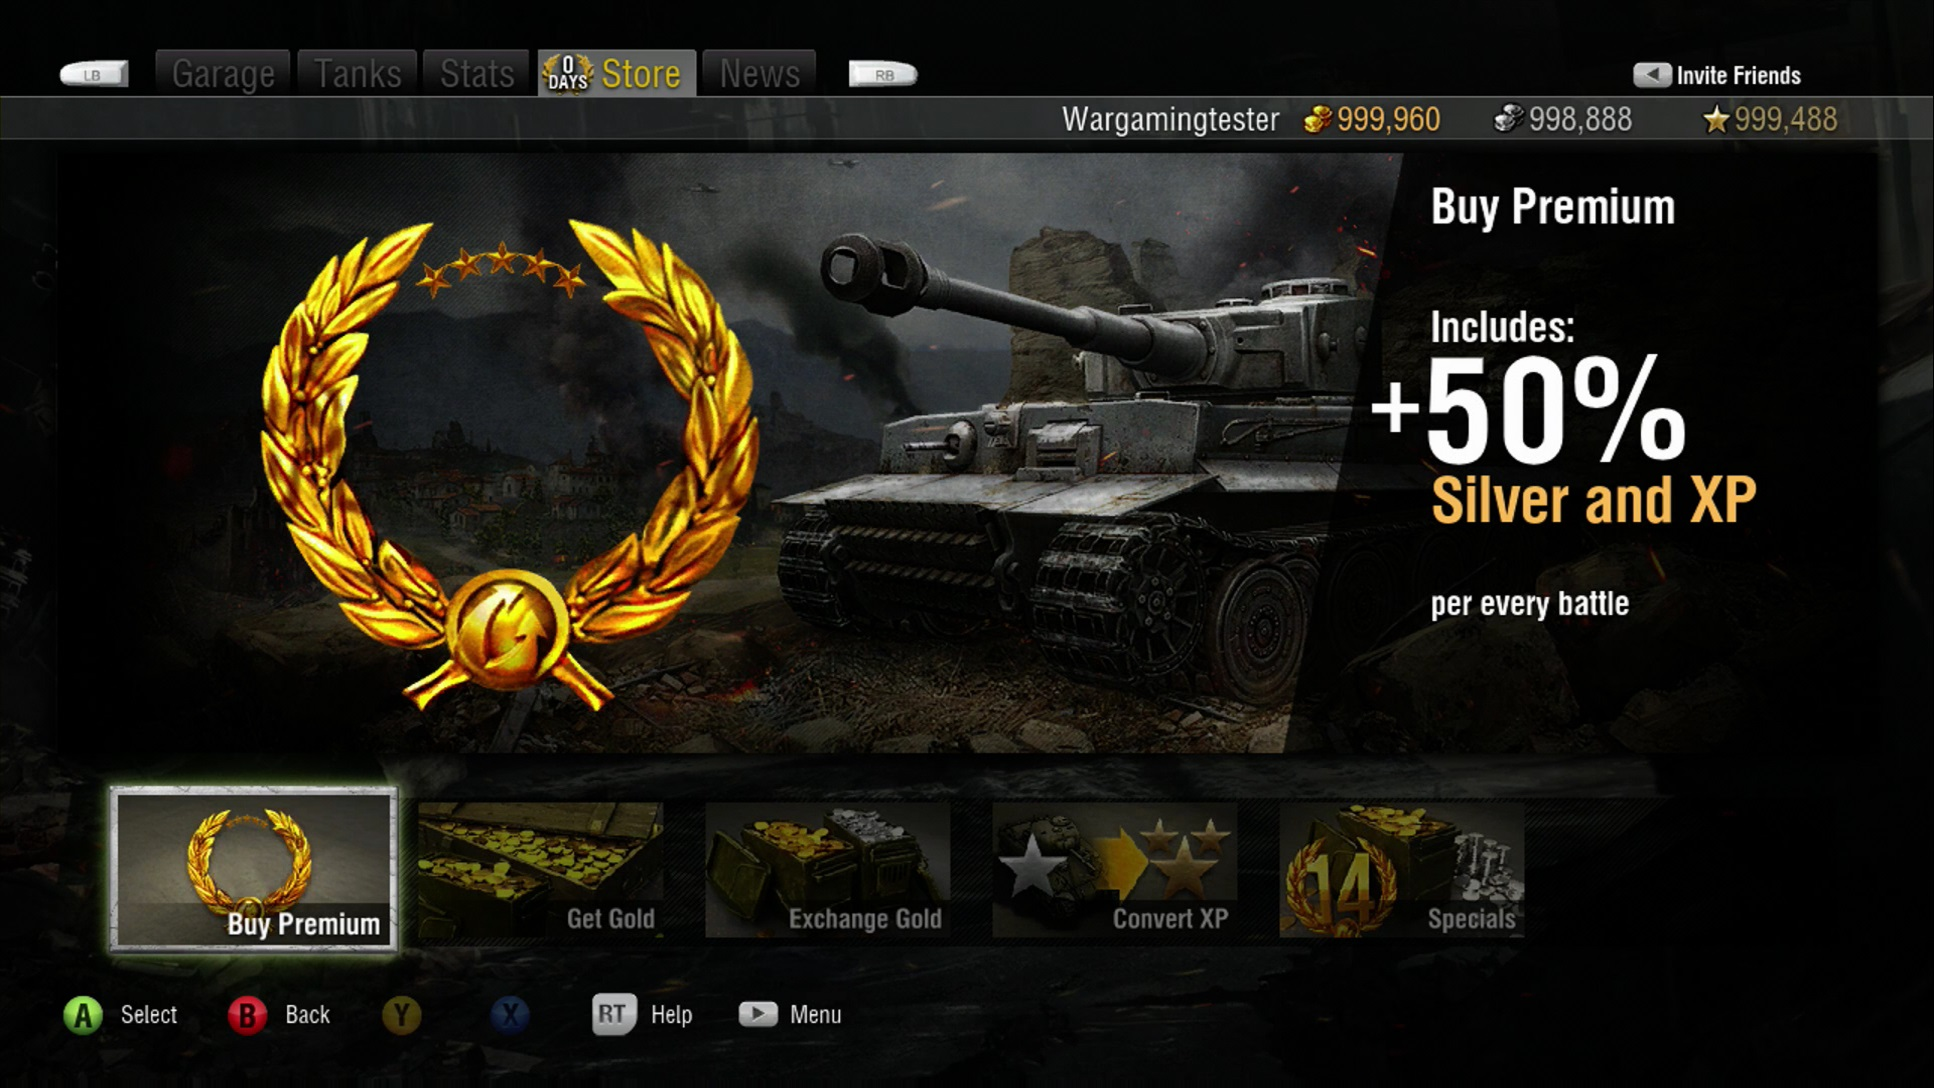 How Do I Buy A Premium Account? | World of Tanks